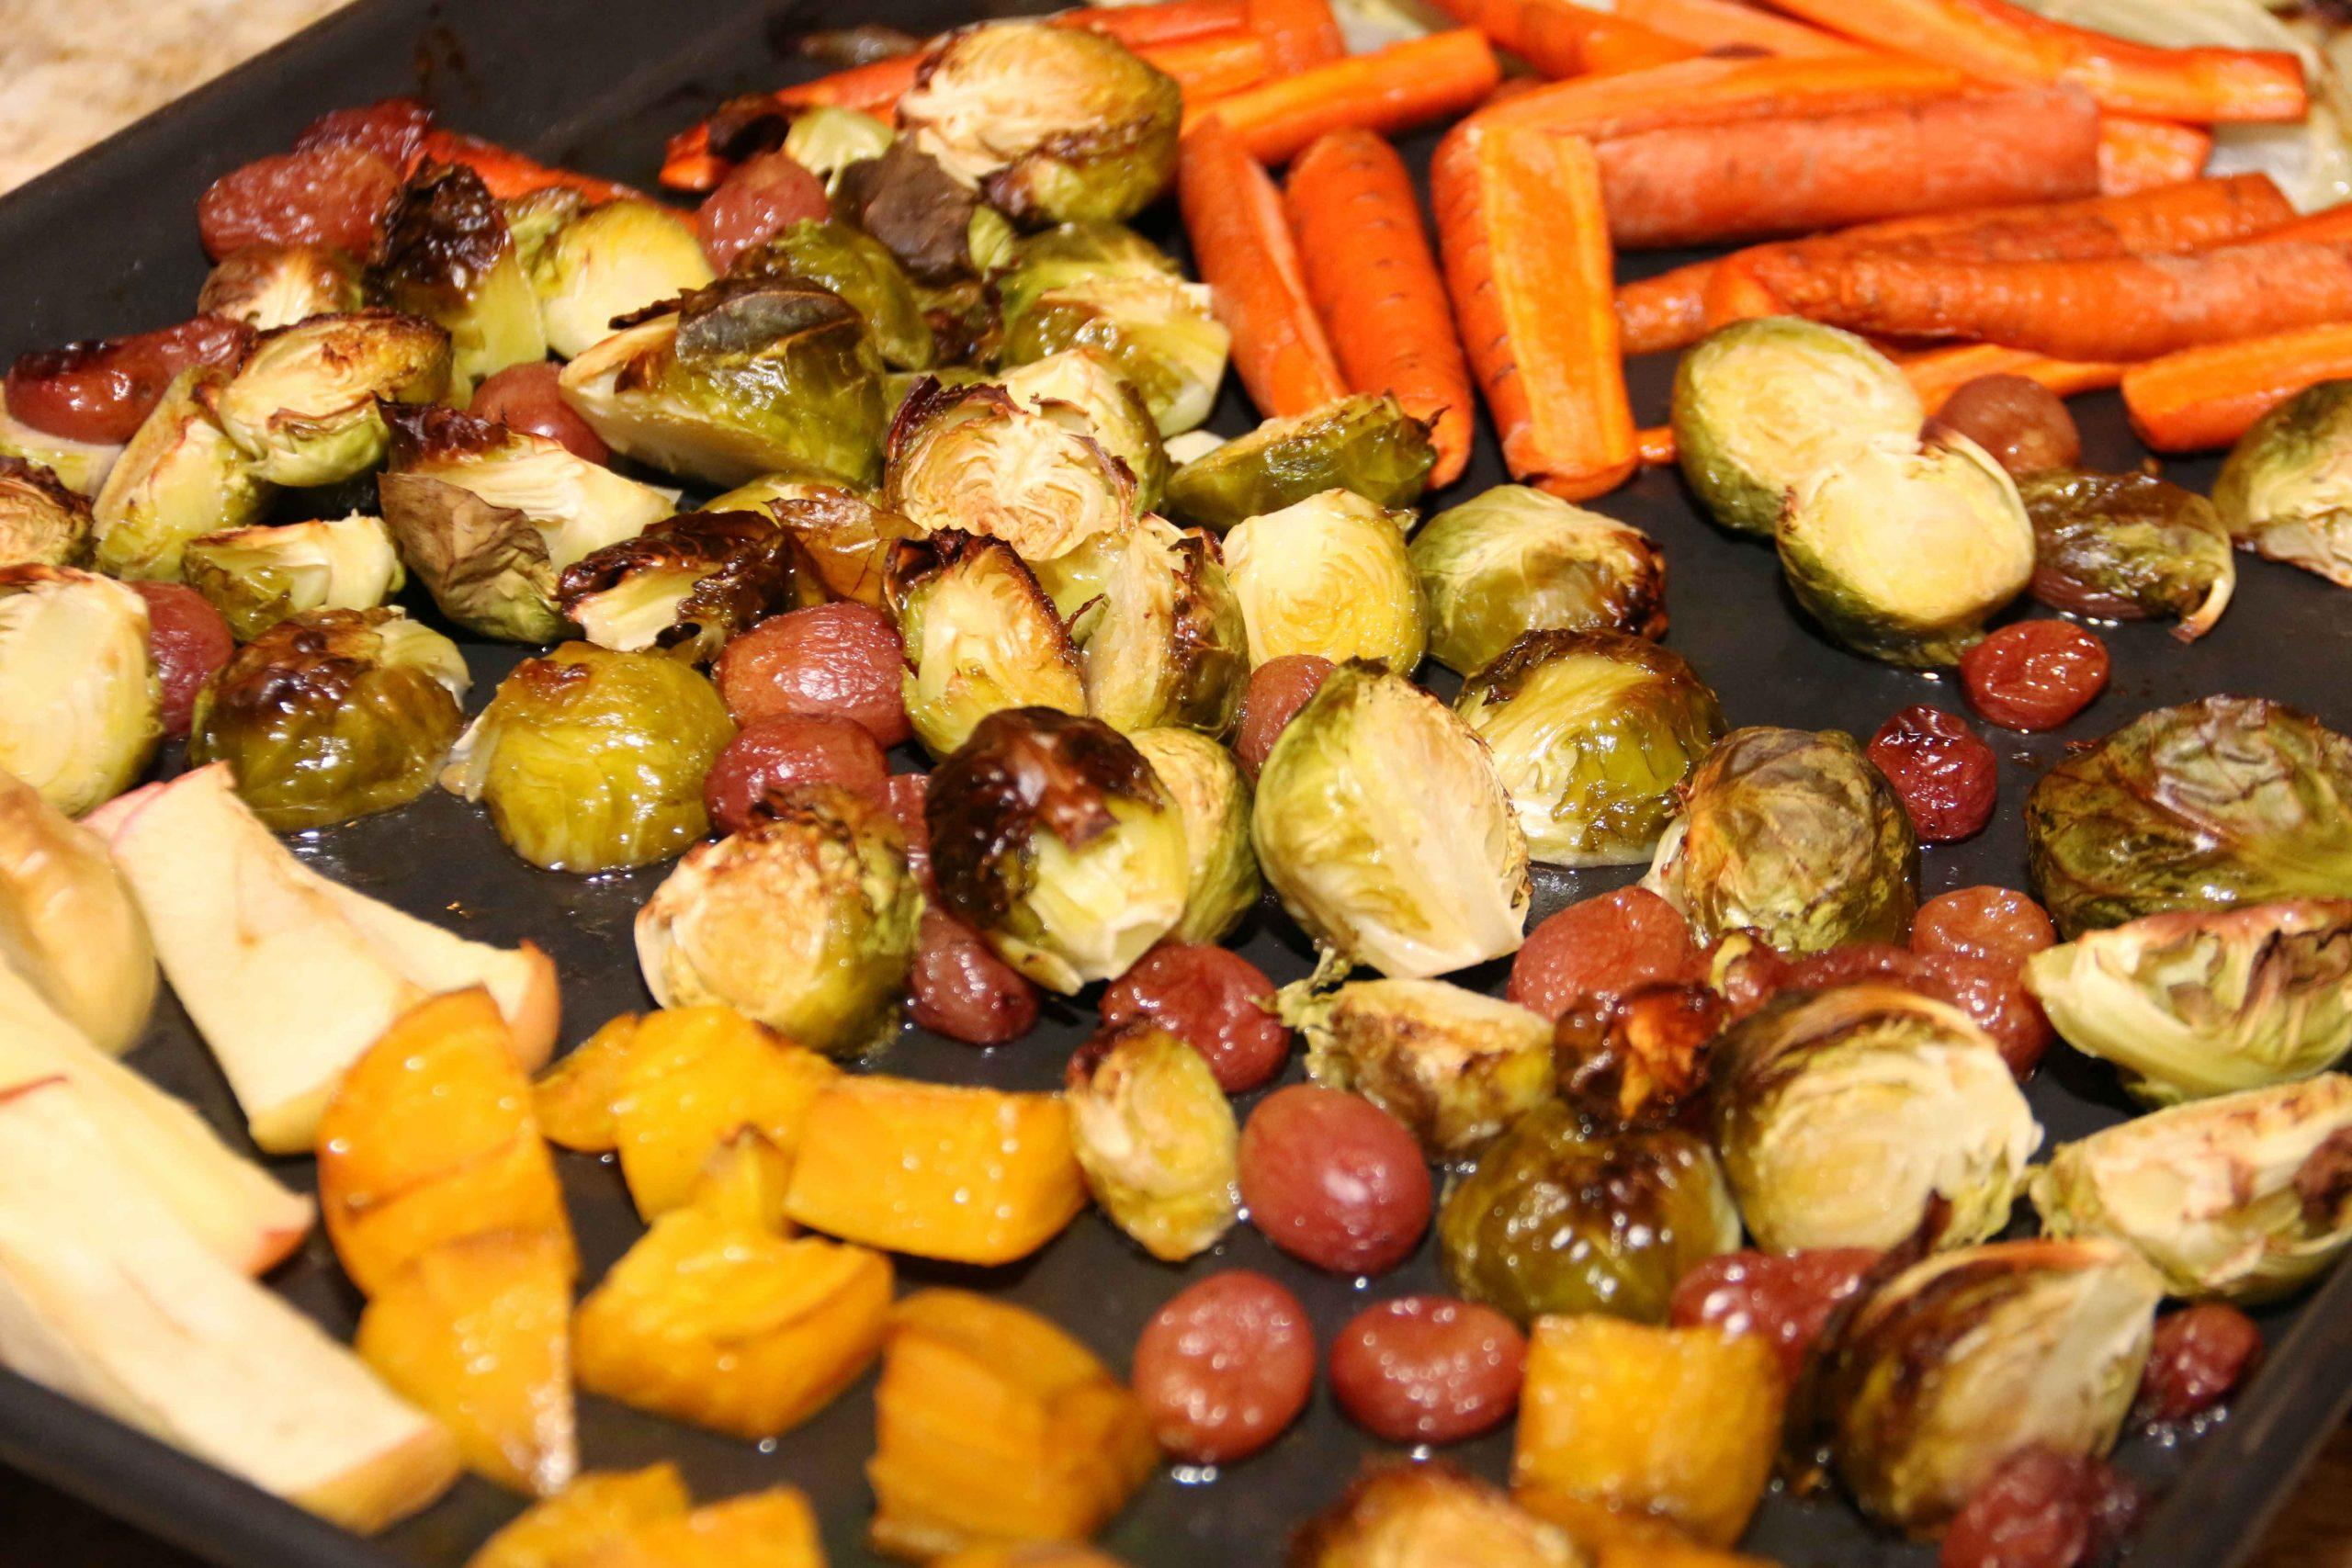 Roasted Veggies Your Family Will Love